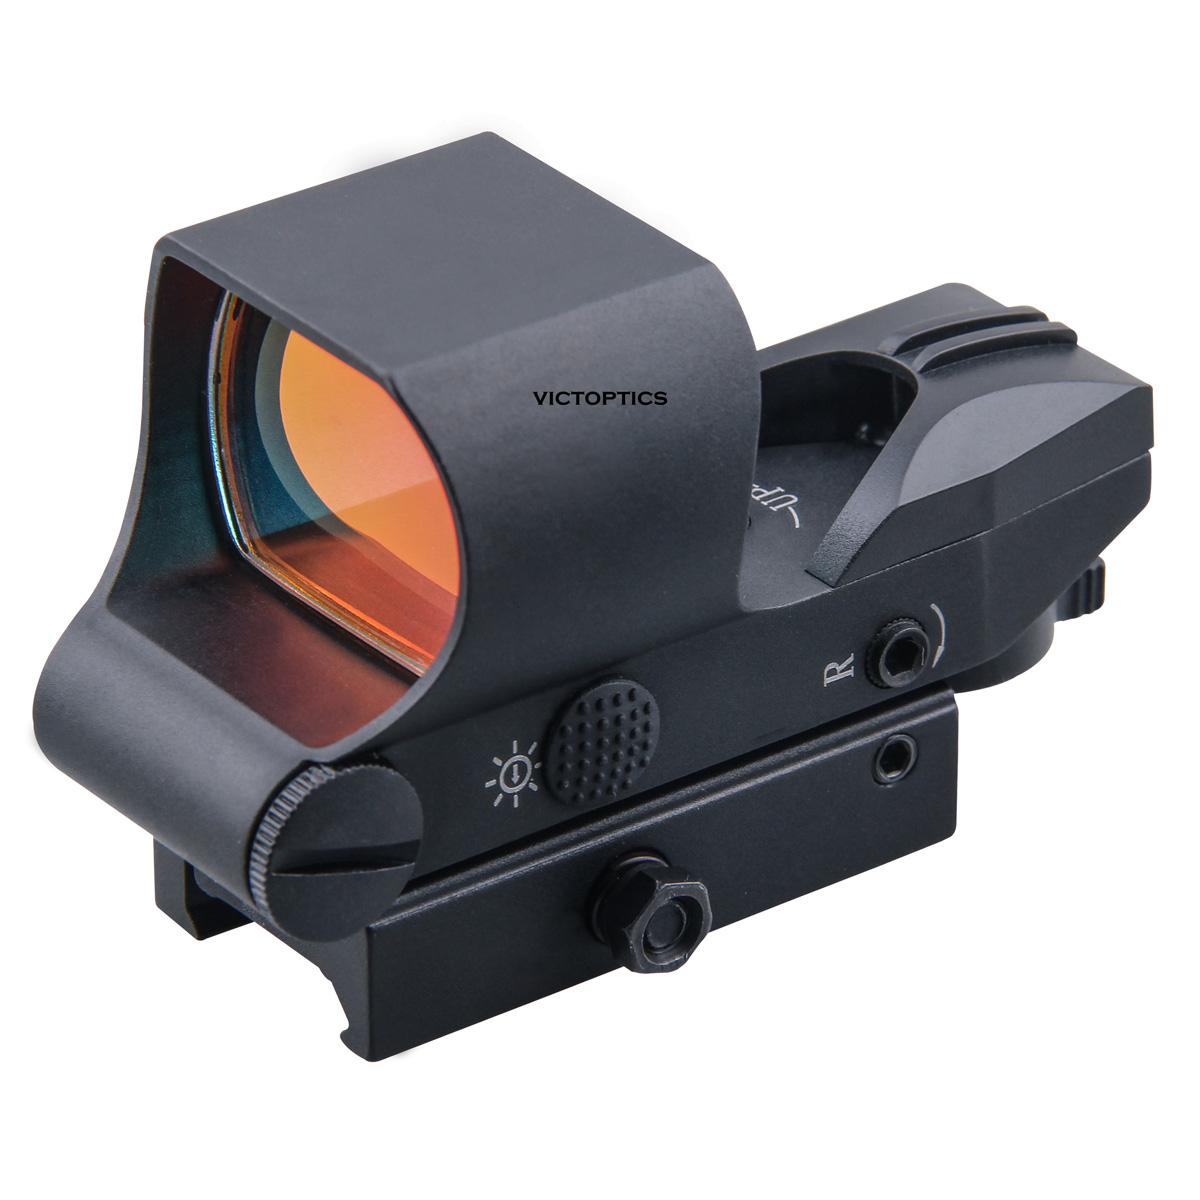 Victoptics 1x28x40 Reticle Lock System Tactical Red Dot Scope Reflex Sight 21mm QD Picatinny Mount 6 Red & Green Dot